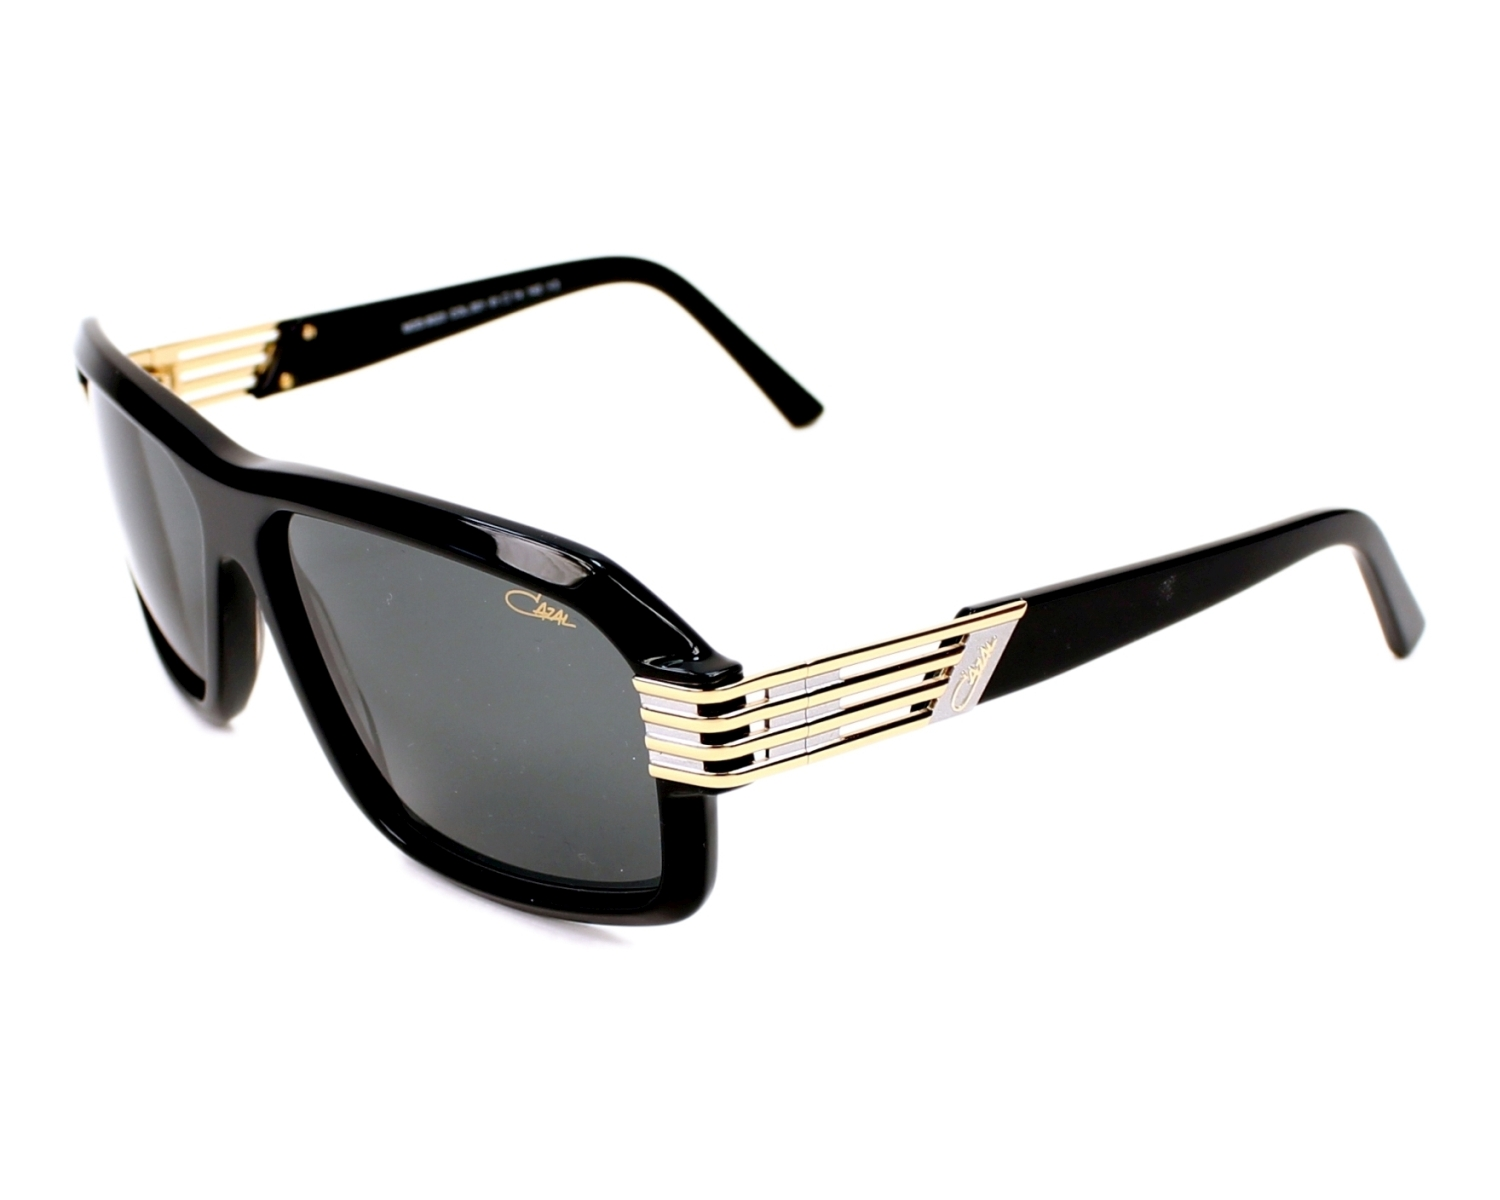 563e49c8c08 Sunglasses Cazal 8023 001 - Black Gold profile view